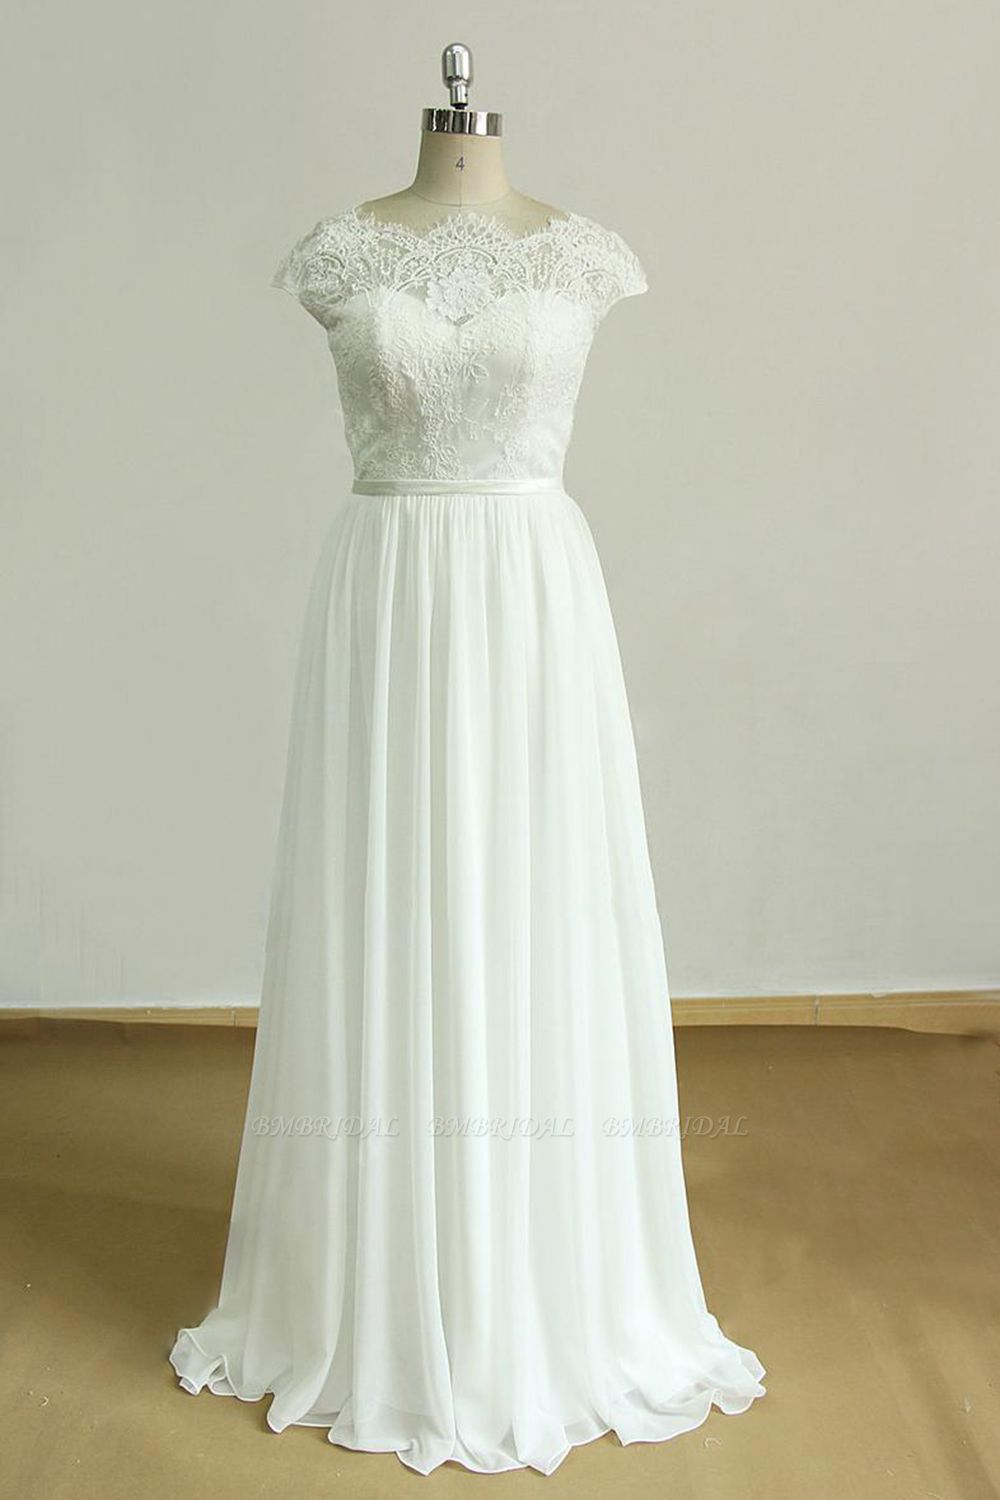 BMbridal Gorgeous Appliques Chiffon Wedding Dress White Shortsleeves A-line Bridal Gowns On Sale